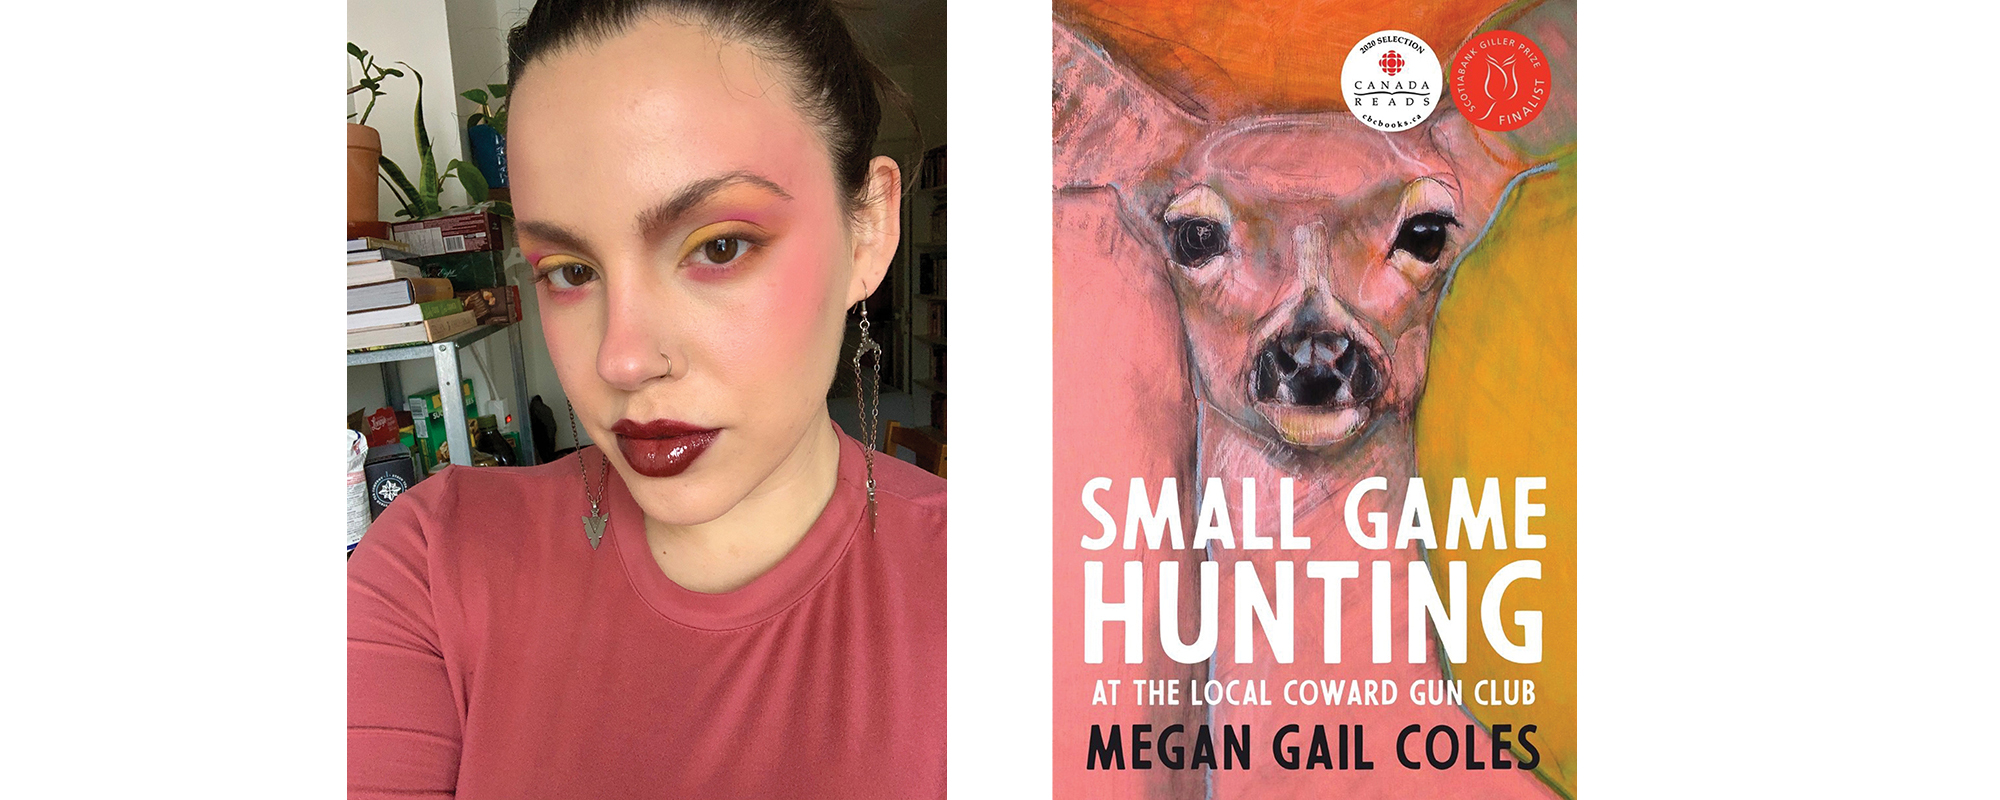 Domenica Martinello does a makeup look inspired by the cover for Megan Gail Coles's Small Game Hunting